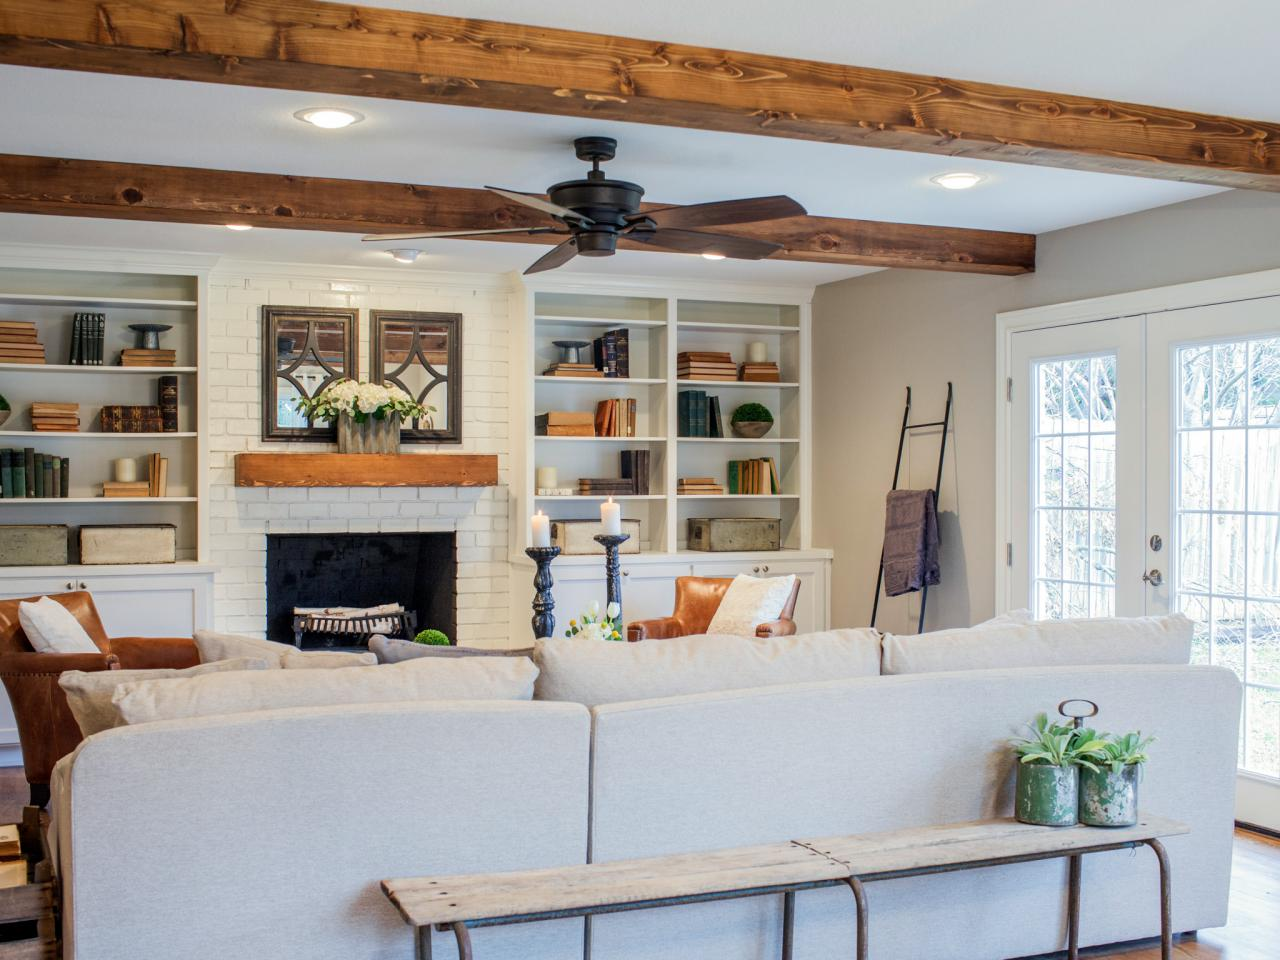 http://withheart.com/featured/diy-faux-wood-ceiling-beams/